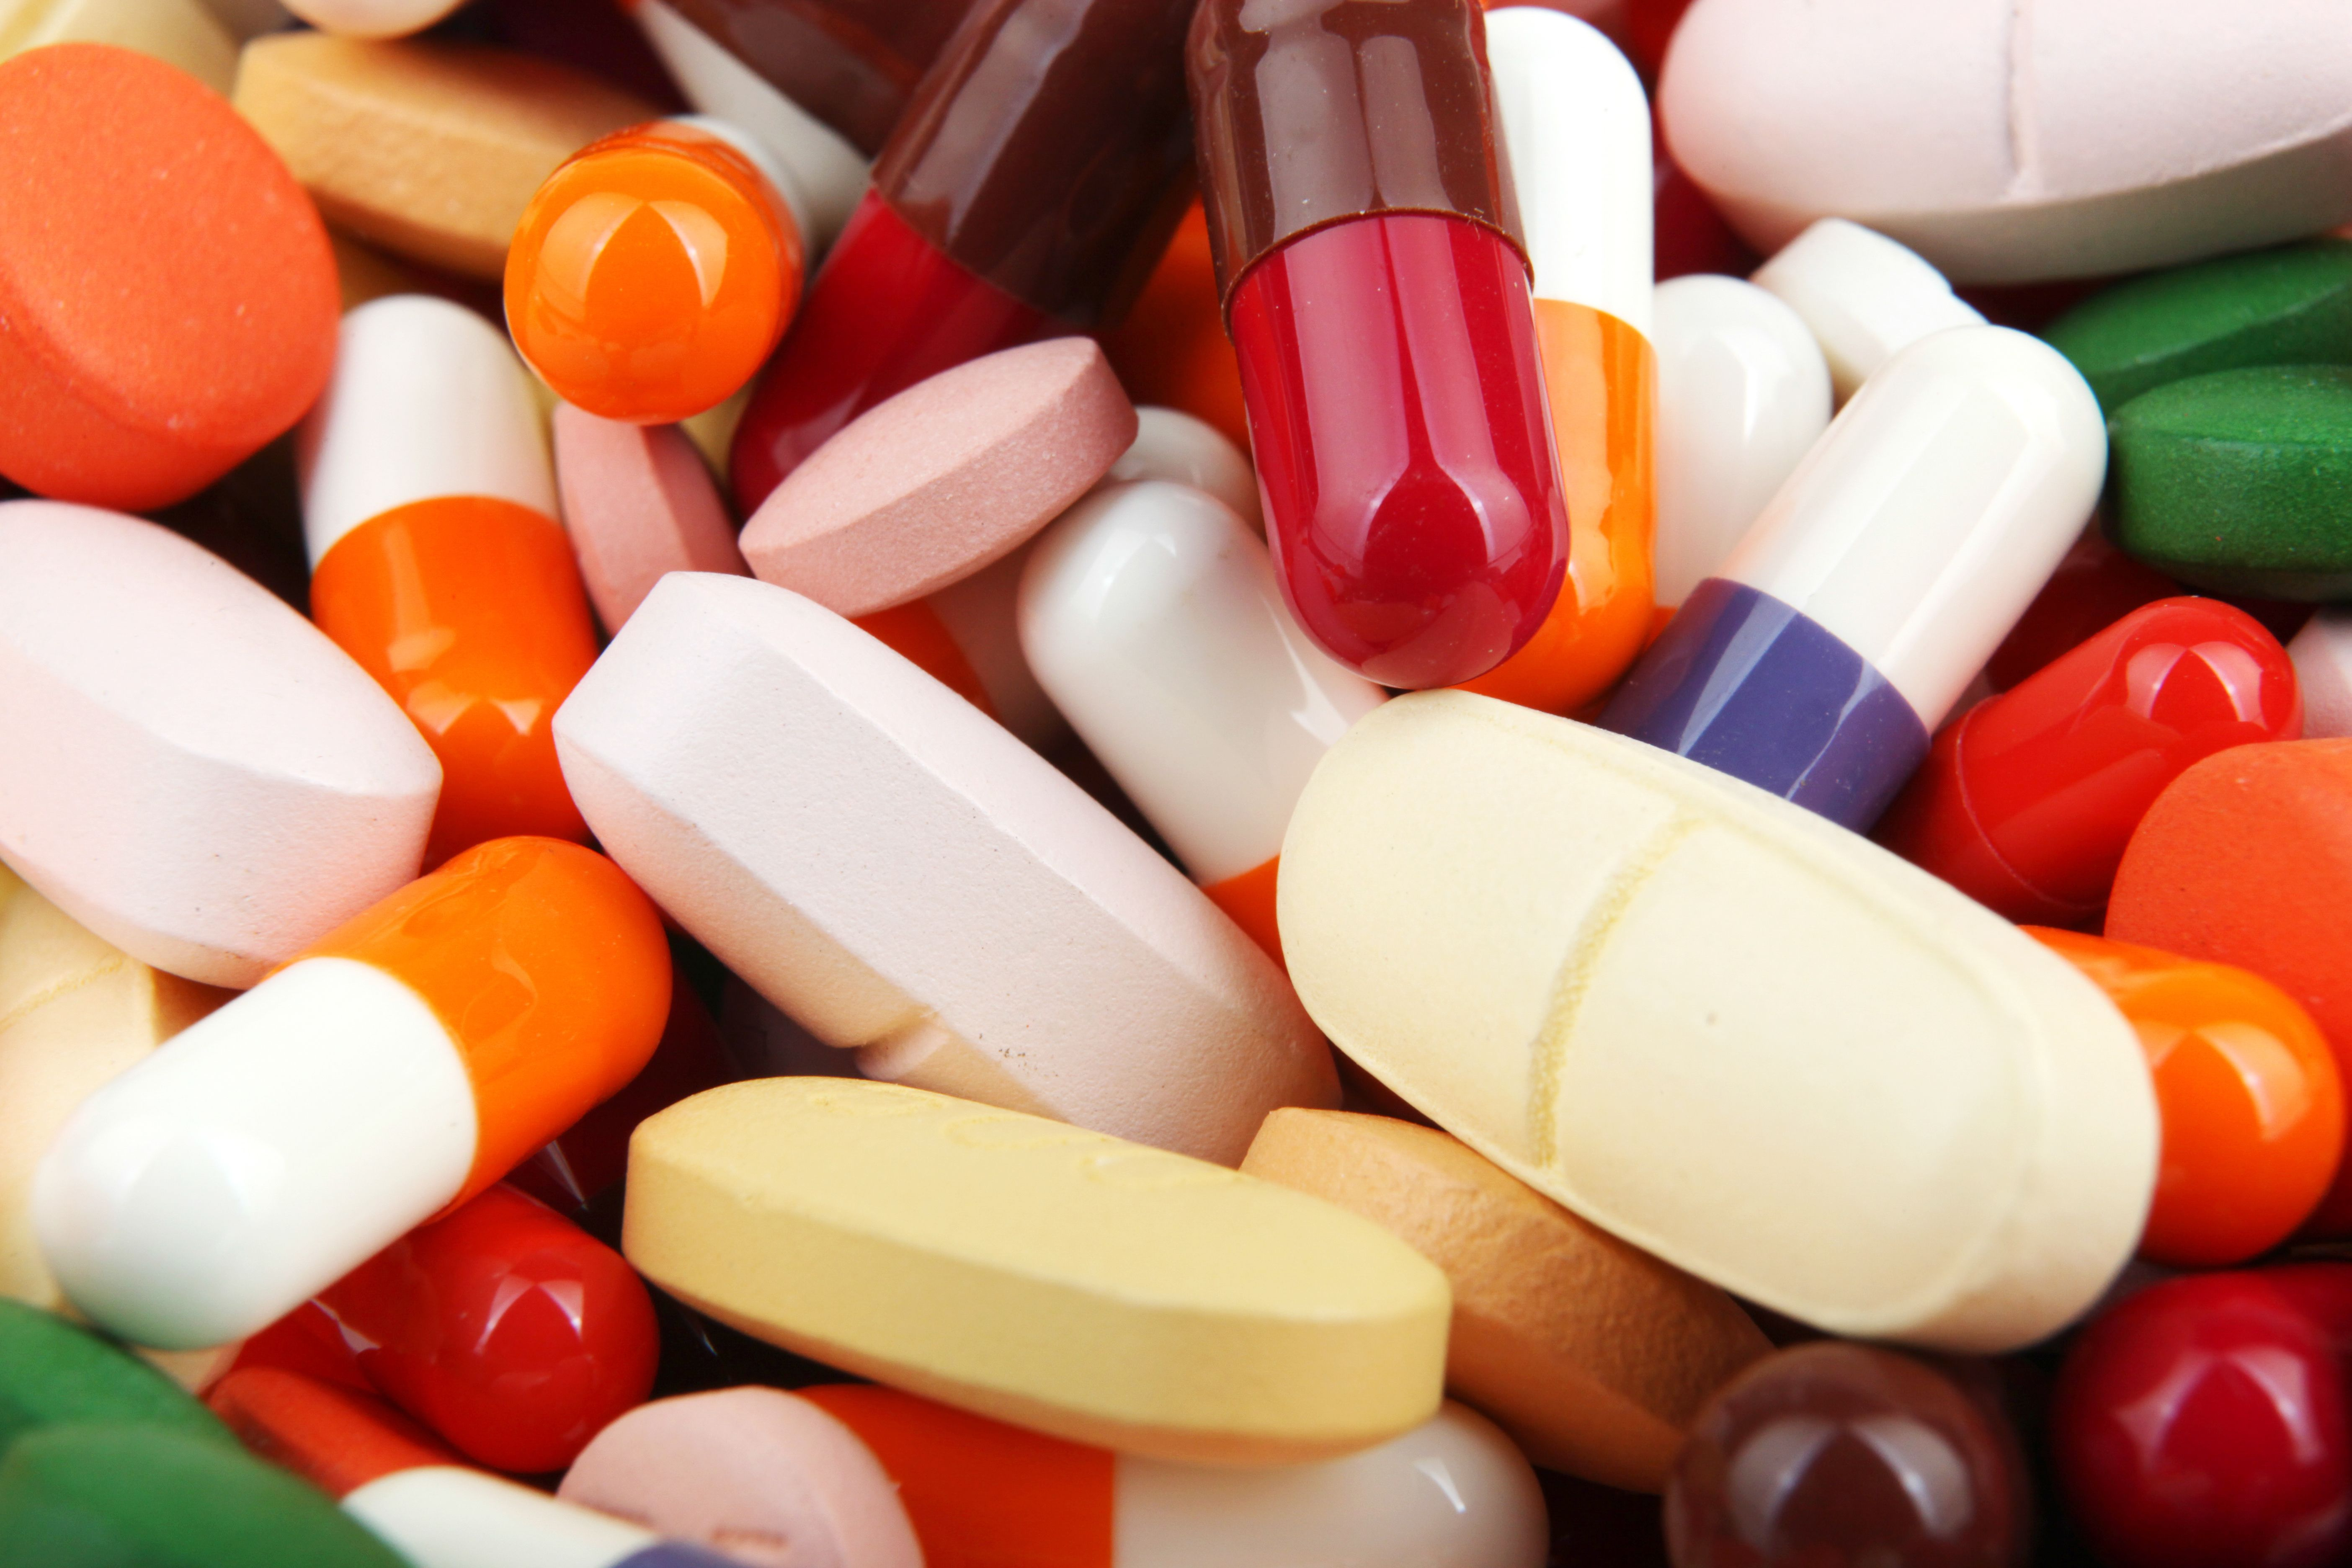 Vitamin Pills Could Increase Cancer Risk